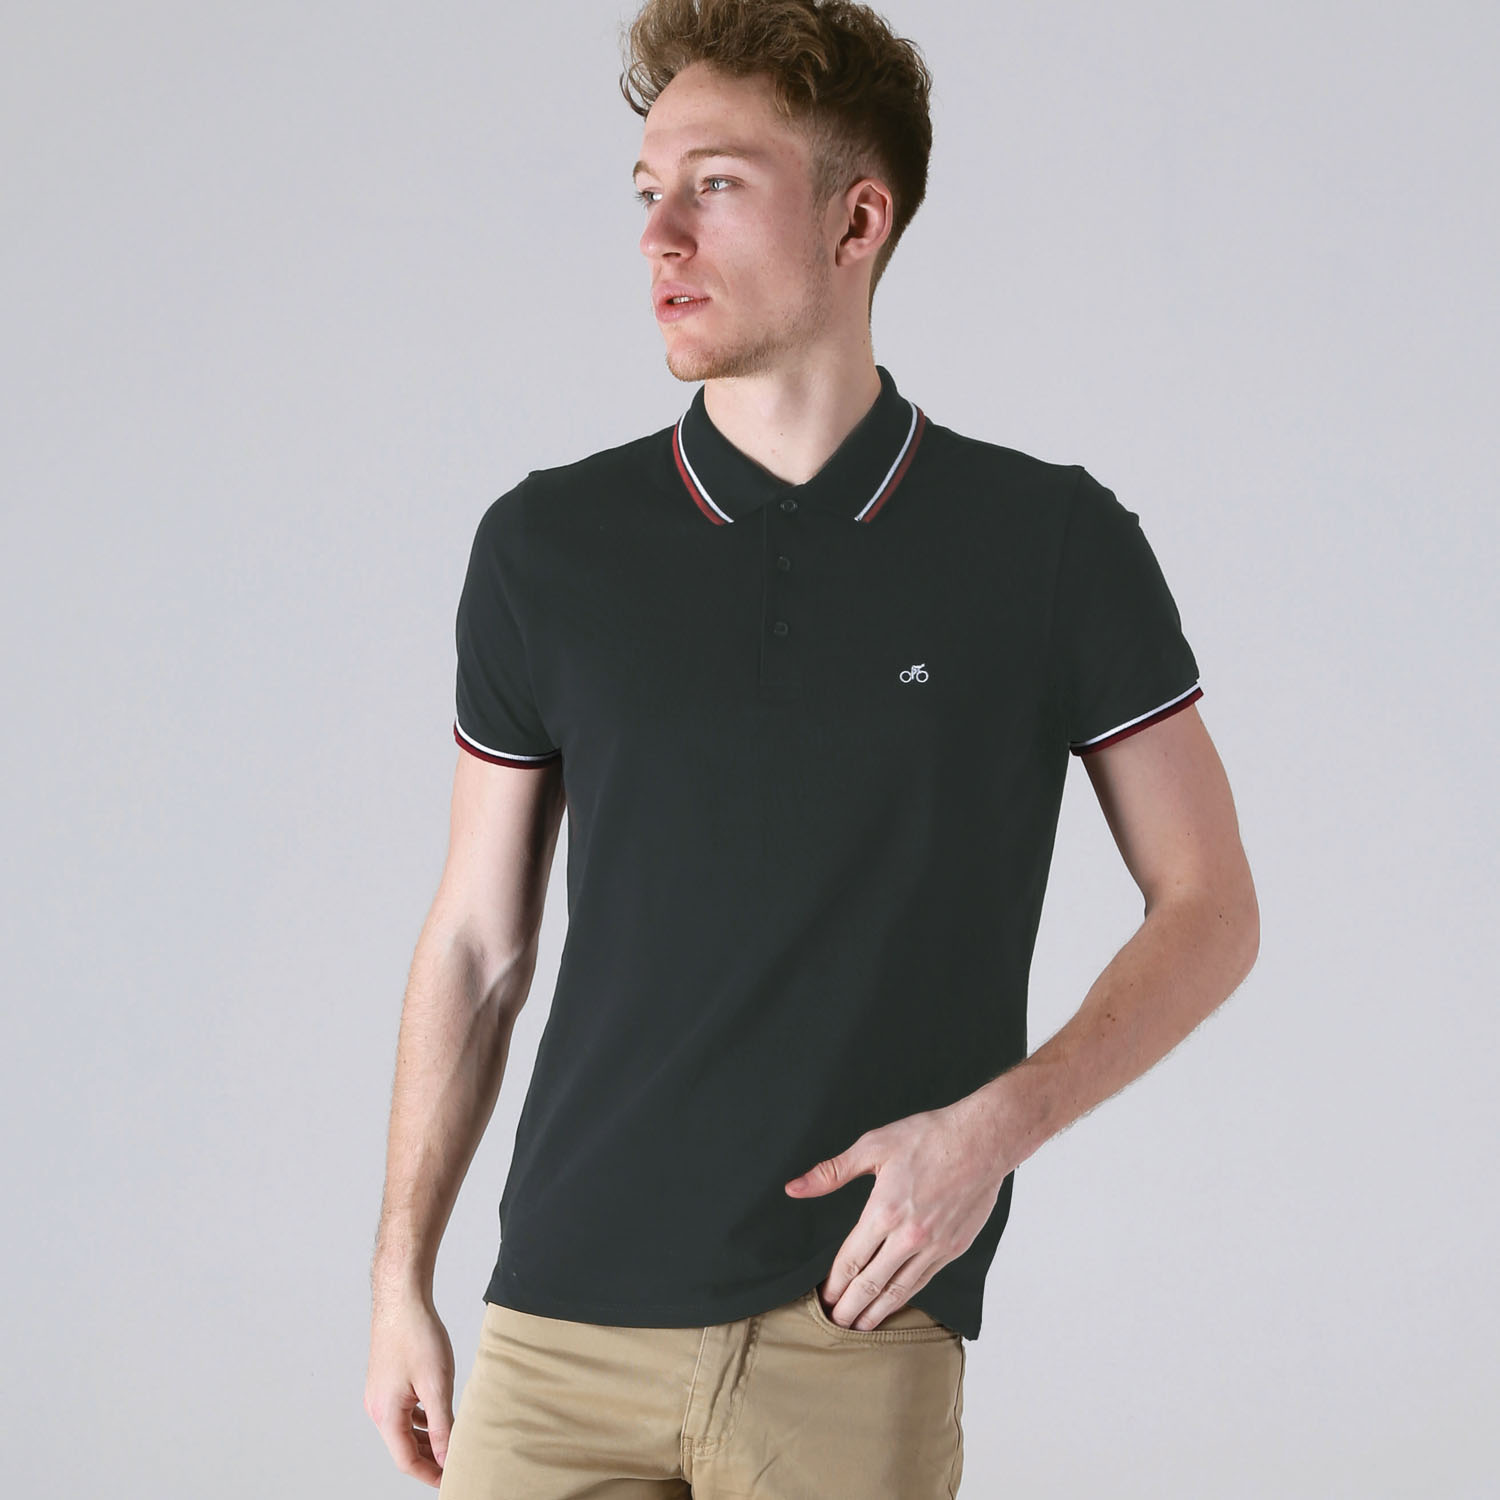 T-lab VeloPolo men's polo black